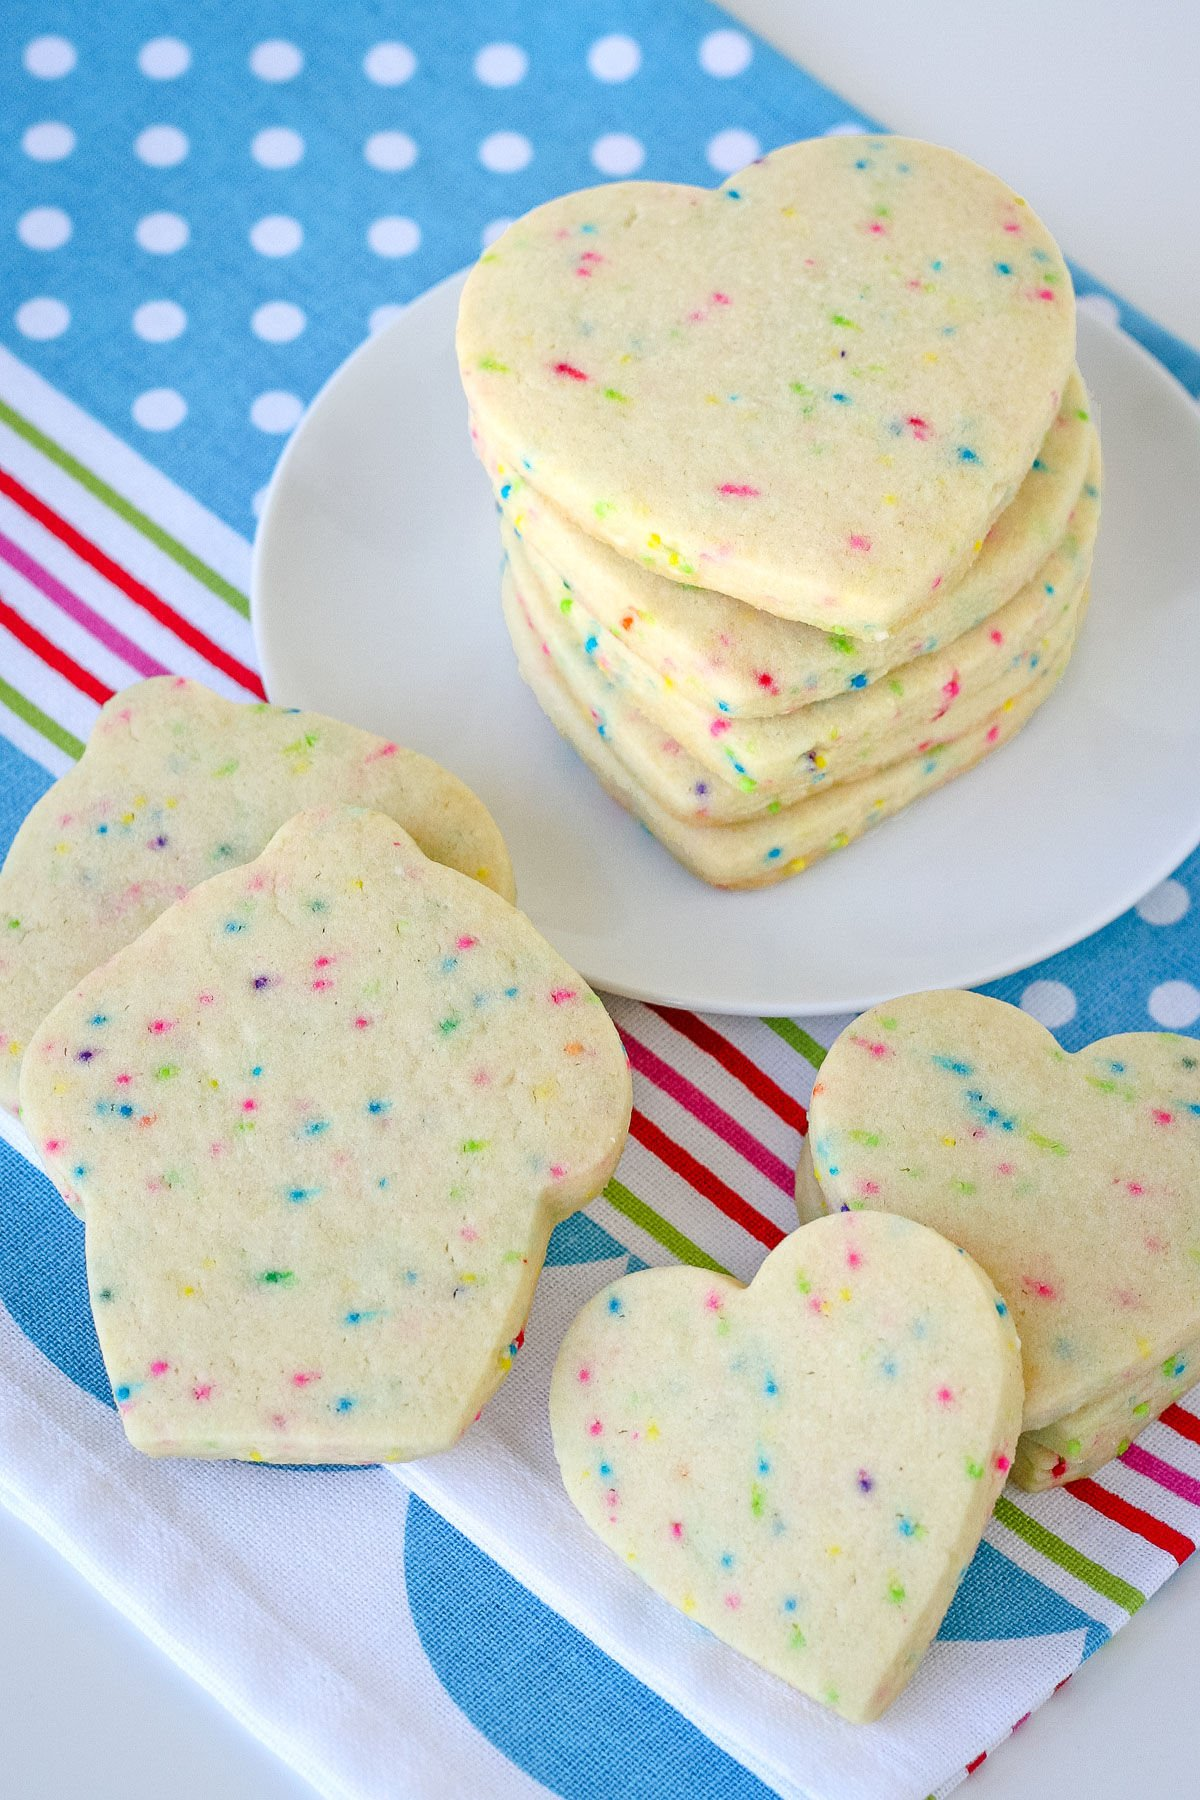 cut out sugar cookies stacked on white plate with colorful blue napkin underneath